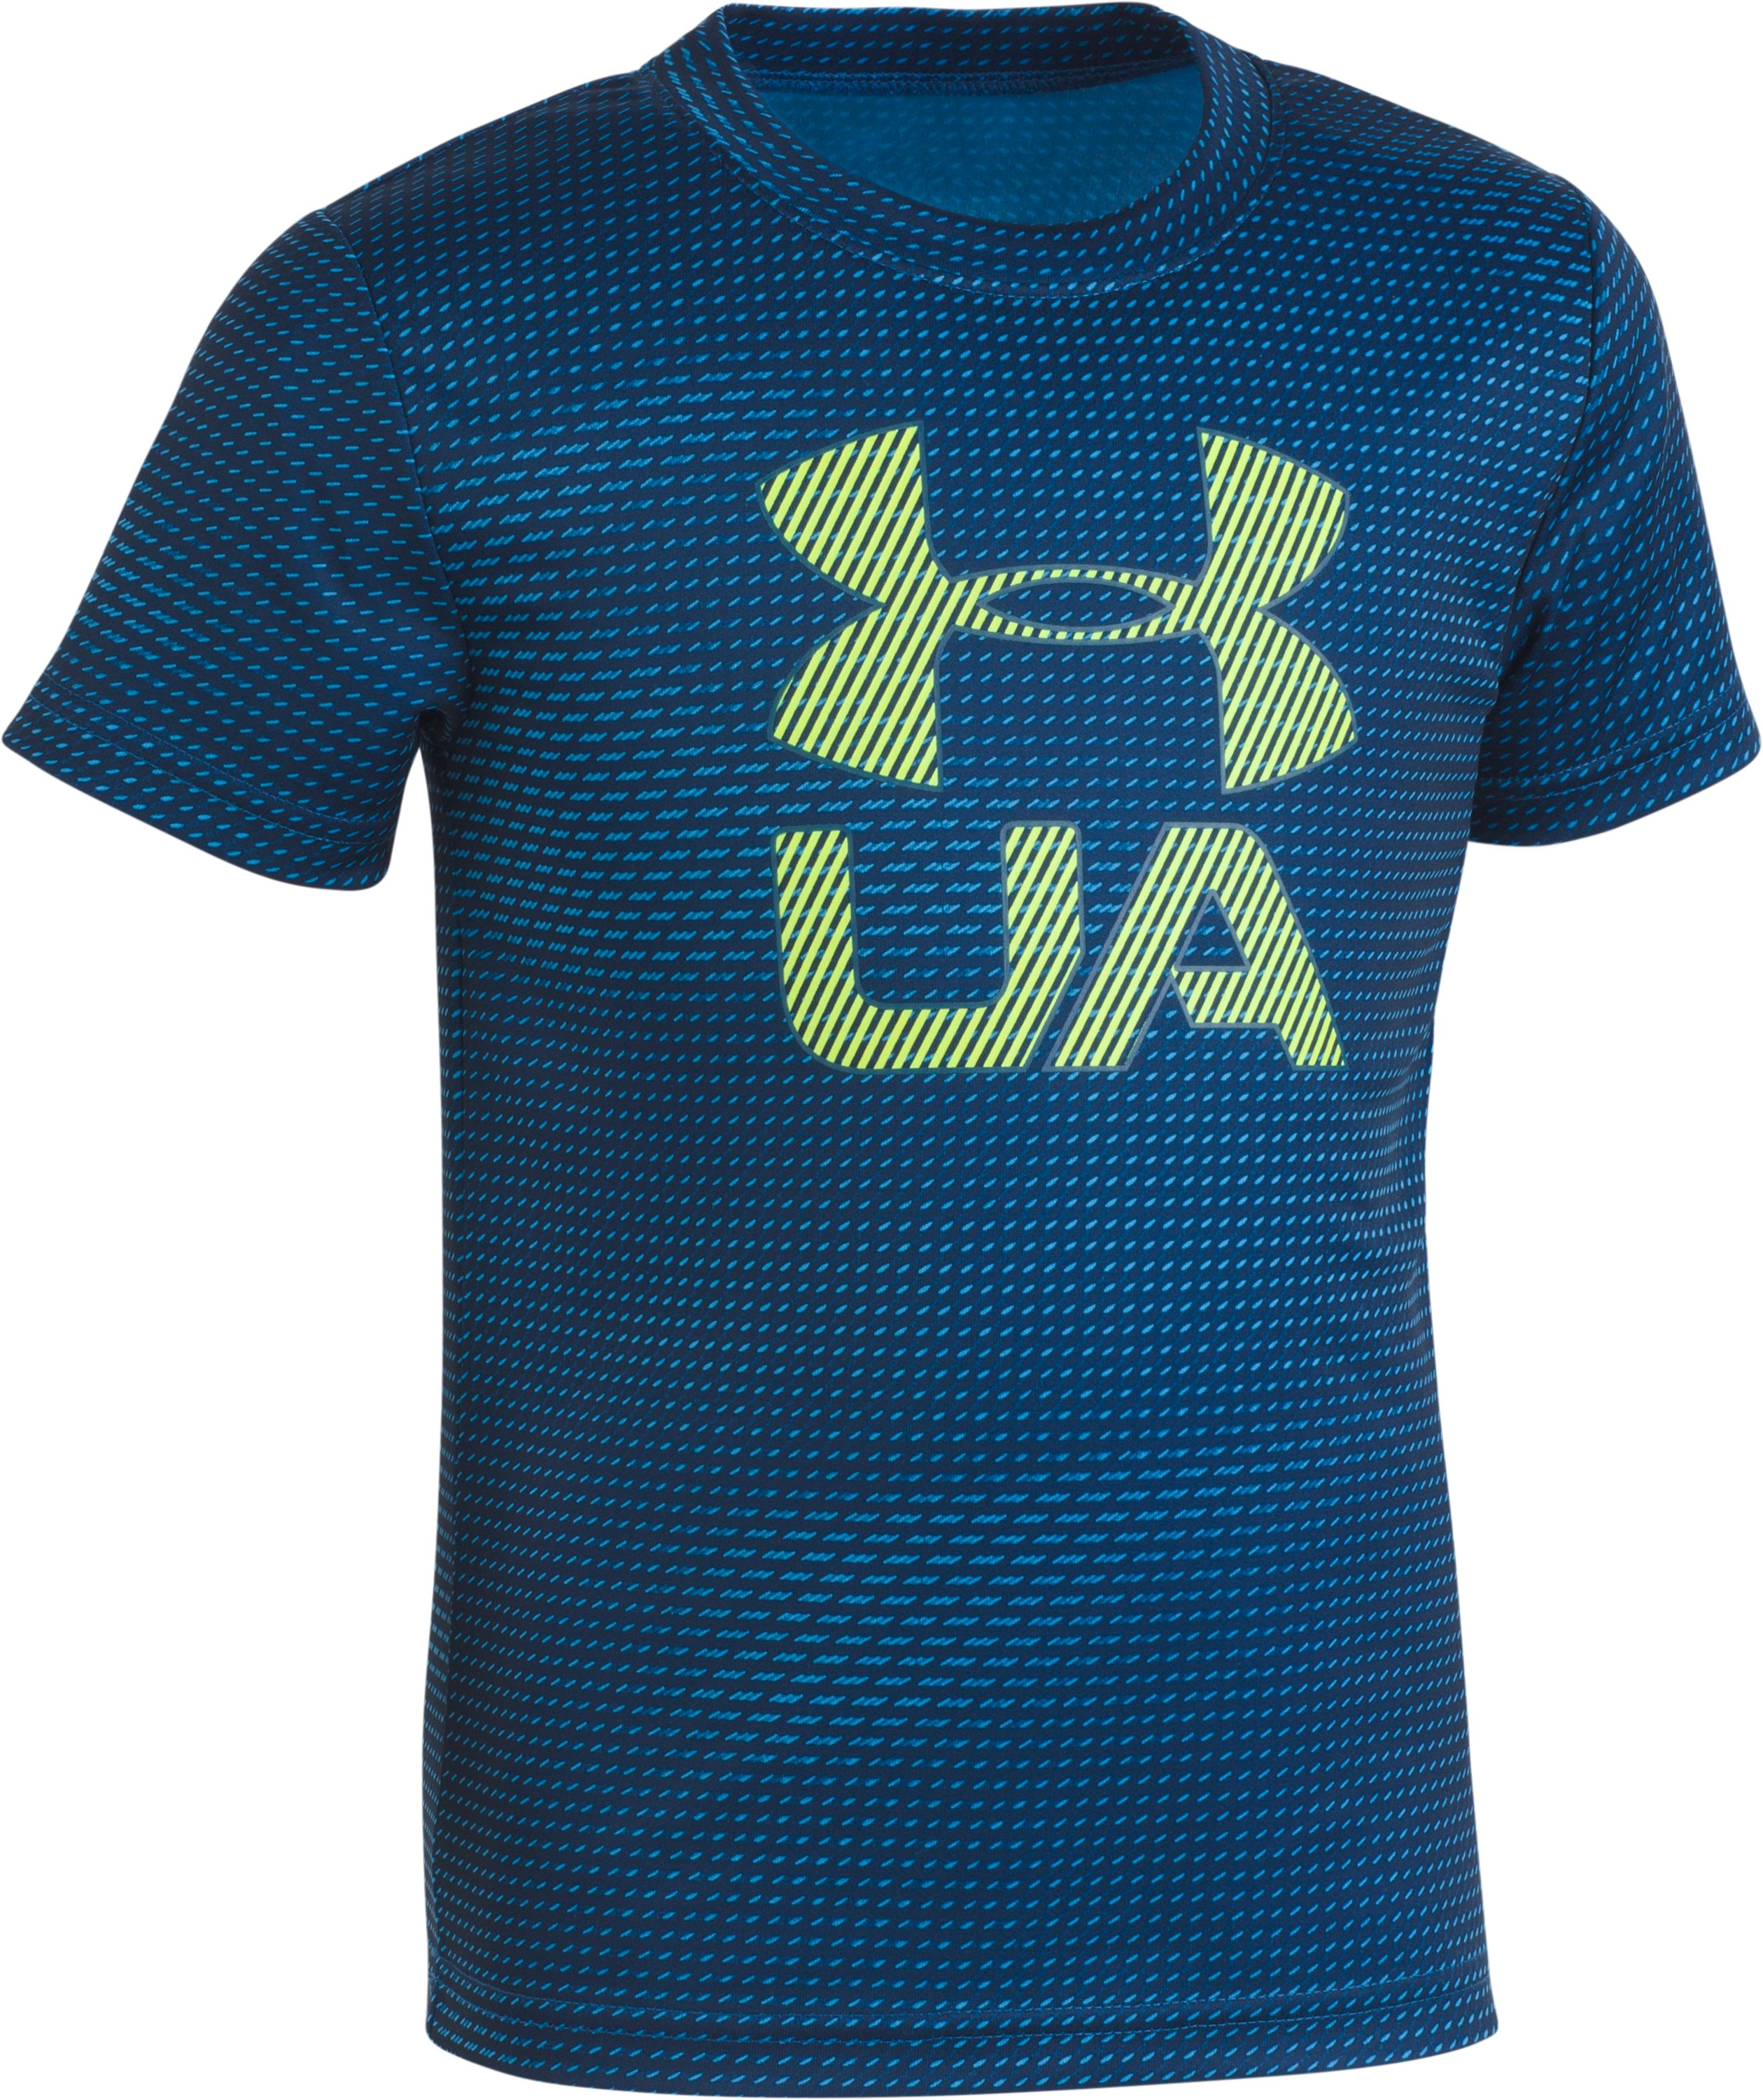 Boys' Toddler UA Sync T-Shirt , Moroccan Blue, zoomed